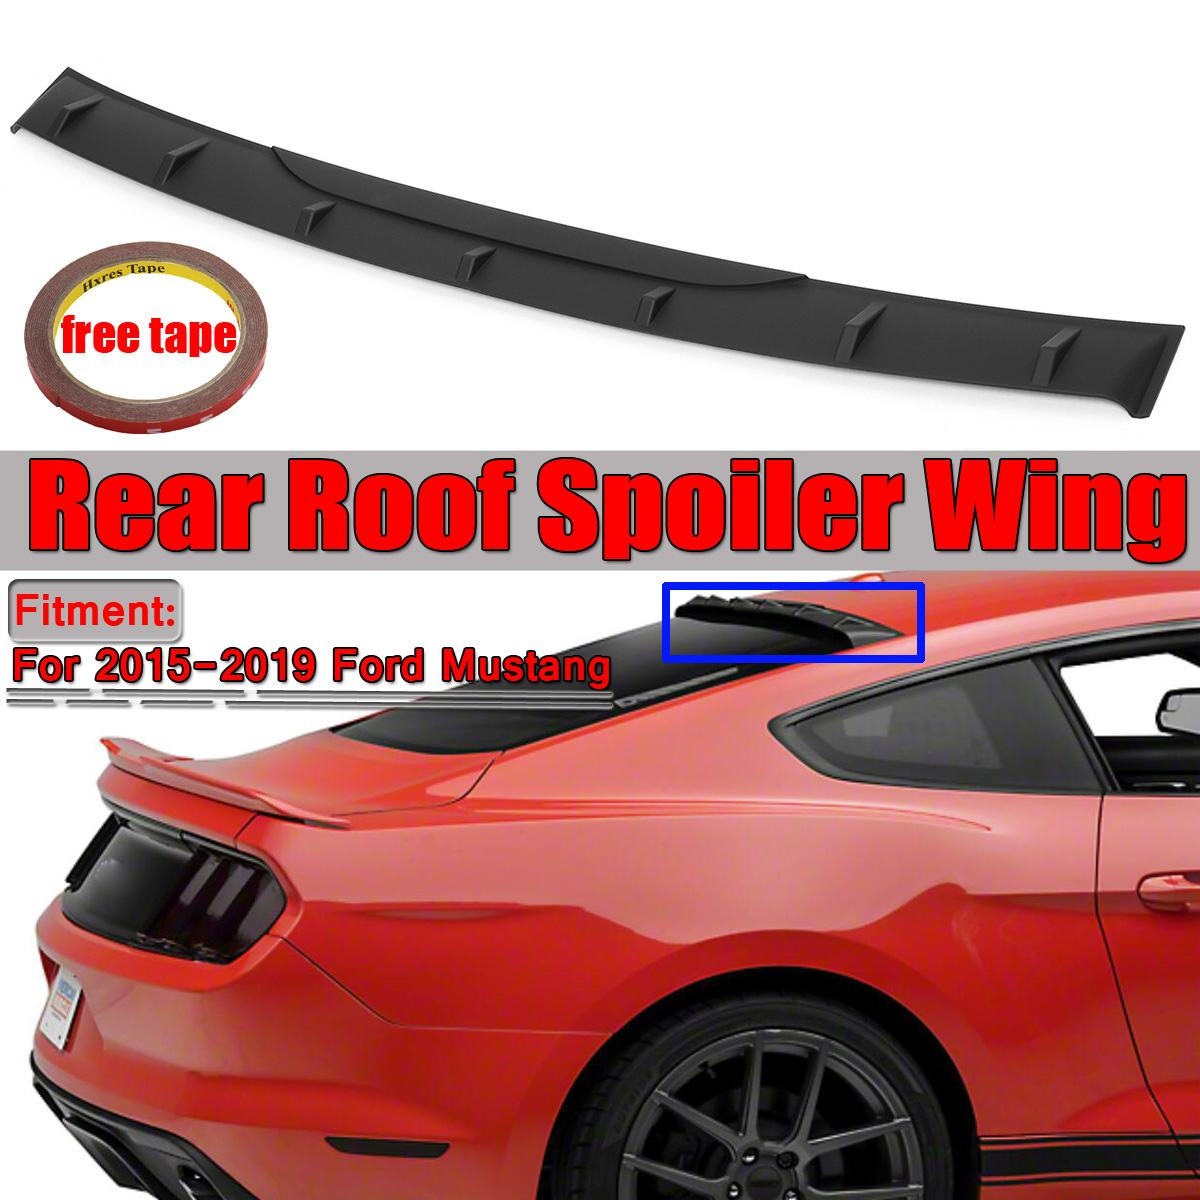 High Quality ABS Car Trunk Rear Roof Spoiler <font><b>Wing</b></font> For Ford For <font><b>Mustang</b></font> <font><b>2015</b></font> 2016 2017 2018 2019 MP Style Rear Spoiler <font><b>Wings</b></font> image